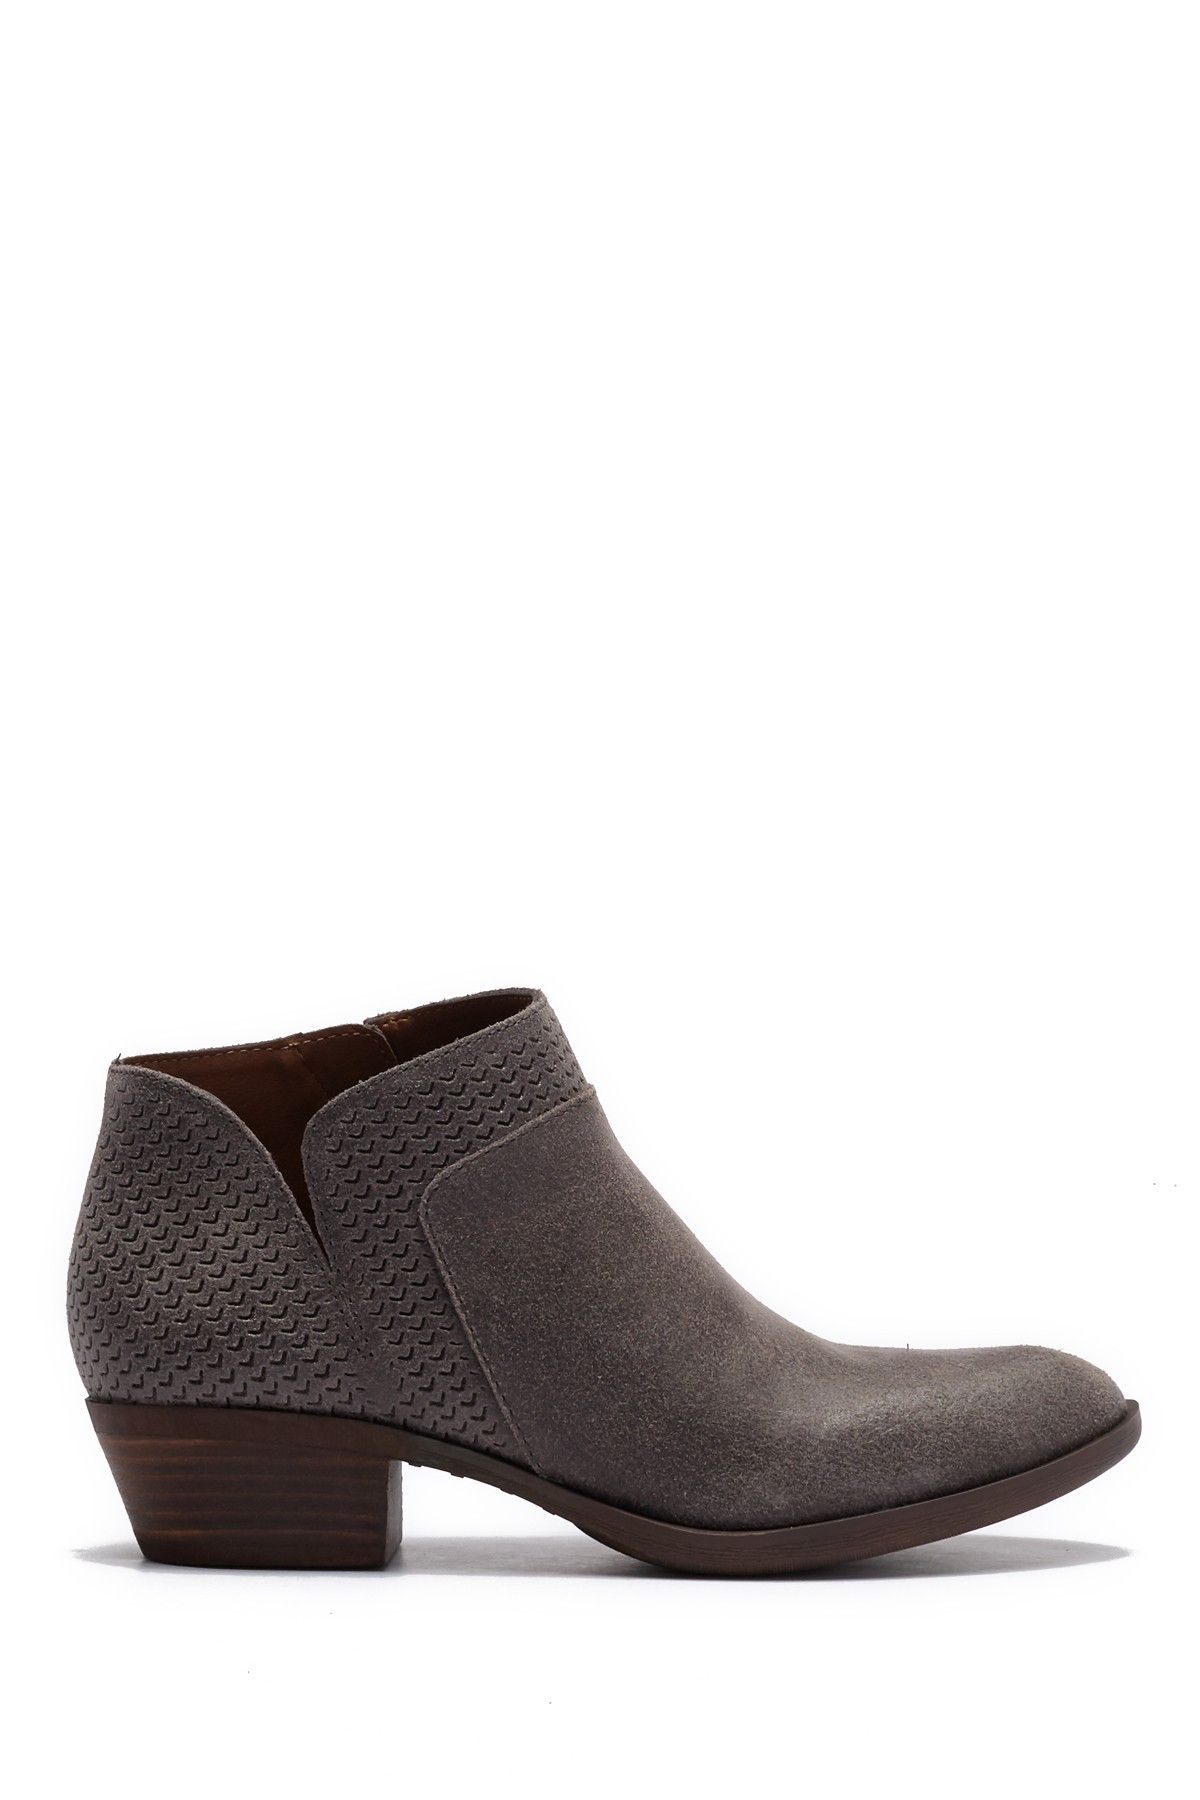 78e5b2c8c5e5e Image of Lucky Brand Brintly Leather Ankle Bootie